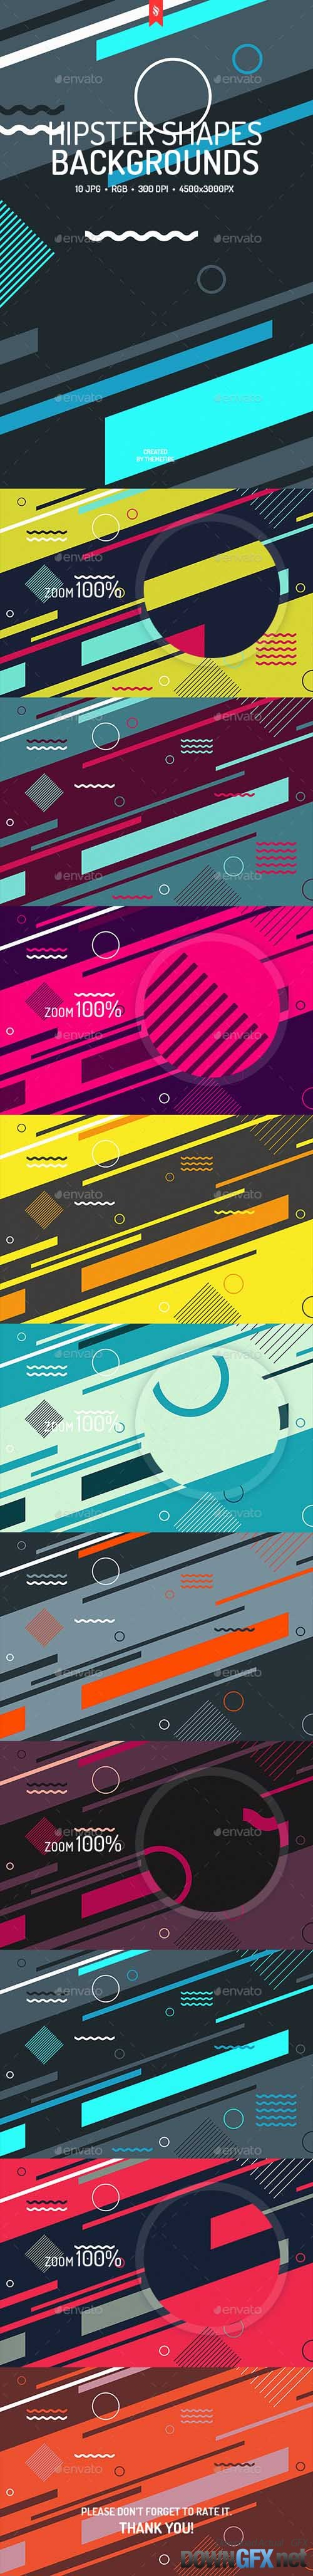 Abstract Hipster Shapes Backgrounds 19539167